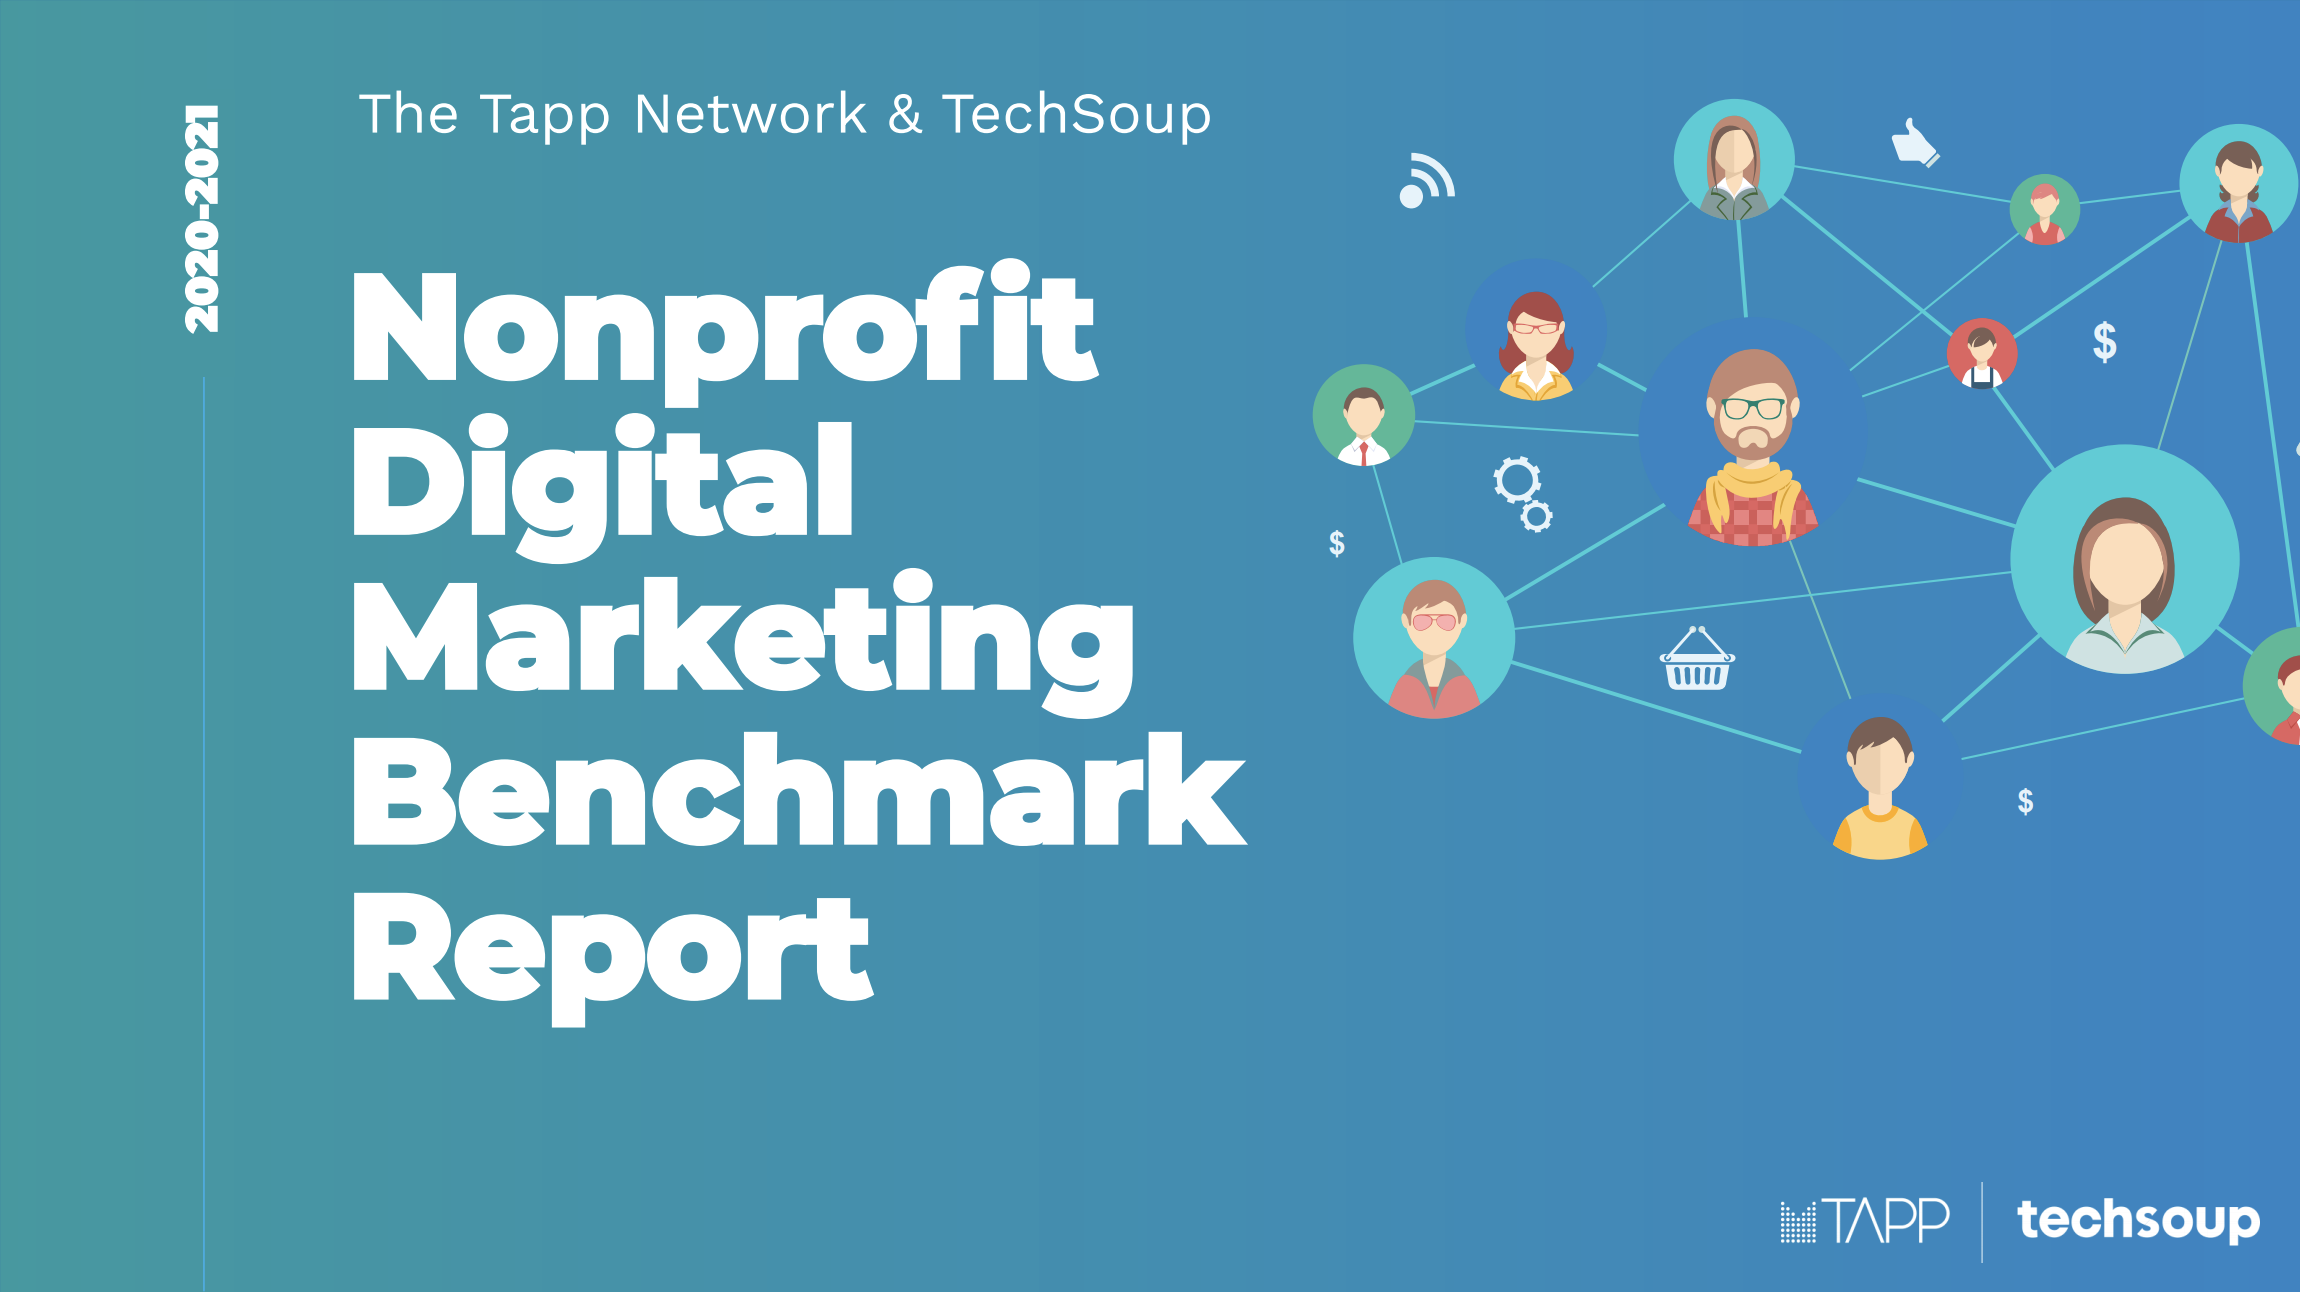 Tapp Network and TechSoup Nonprofit Digital Marketing Benchmark Report